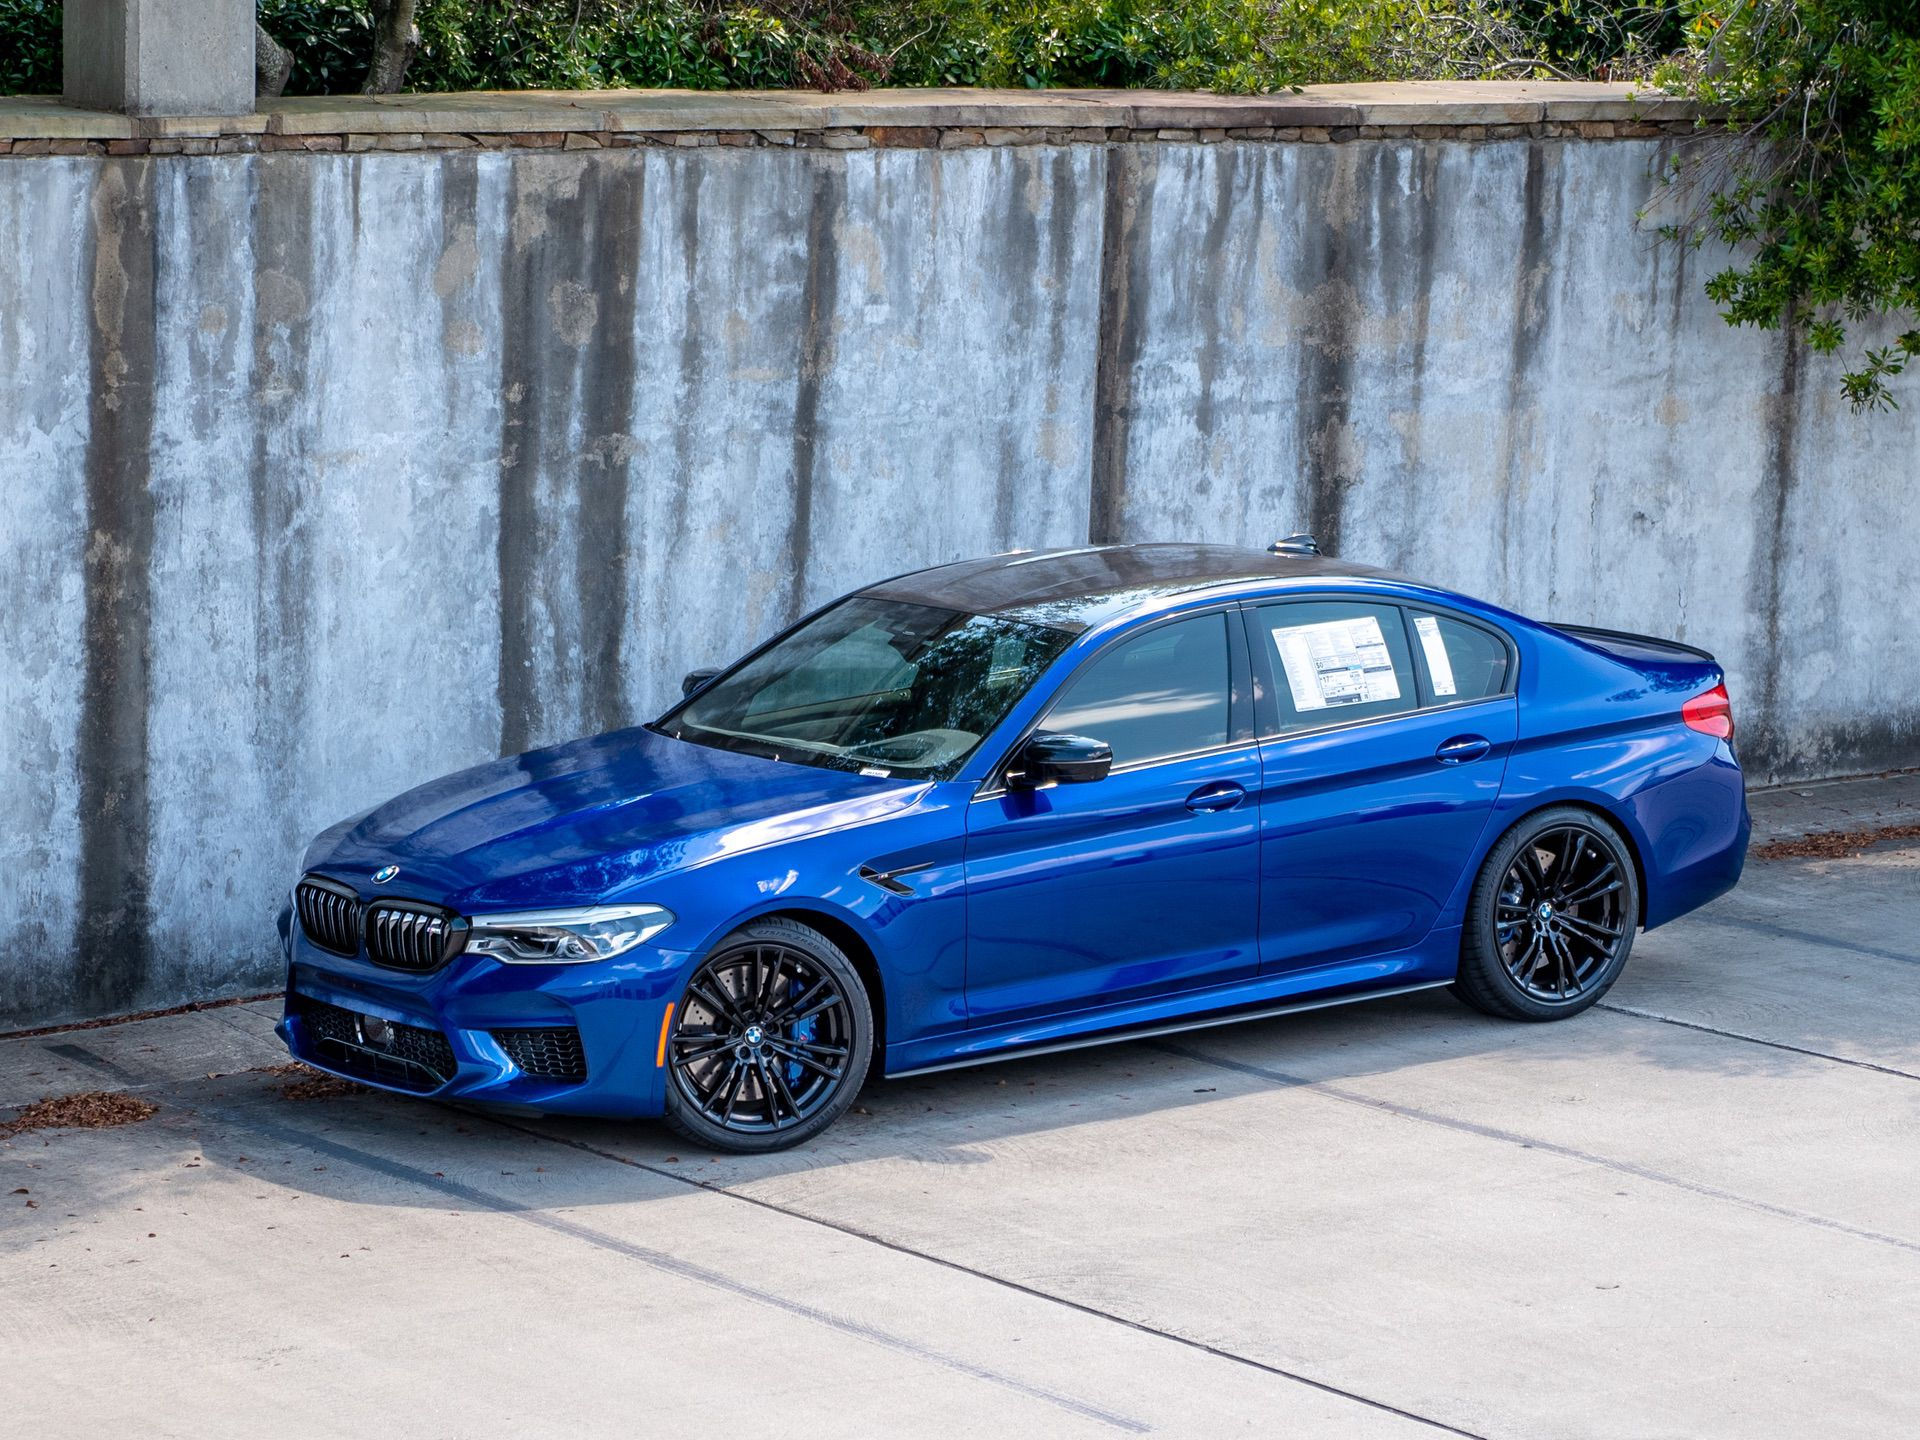 2019 Bmw M5 Competition In Marina Bay Blue Metallic New Photos